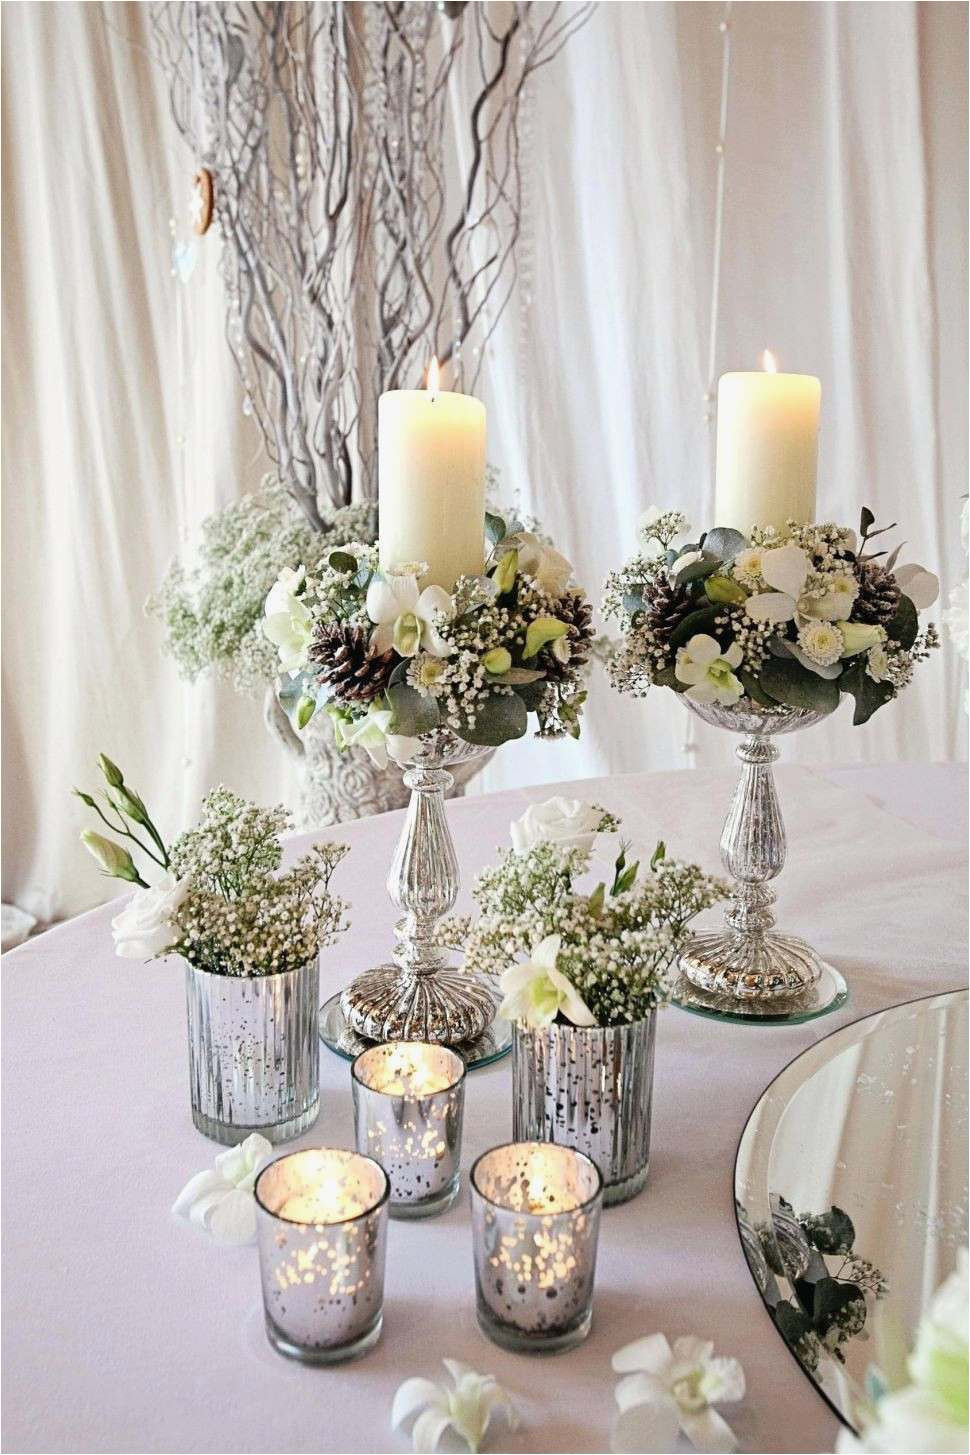 4x4 square vase of wedding reception decoration ideas photo wedding reception throughout wedding reception decoration ideas 2018 living room vases wholesale new h vases big tall i 0d